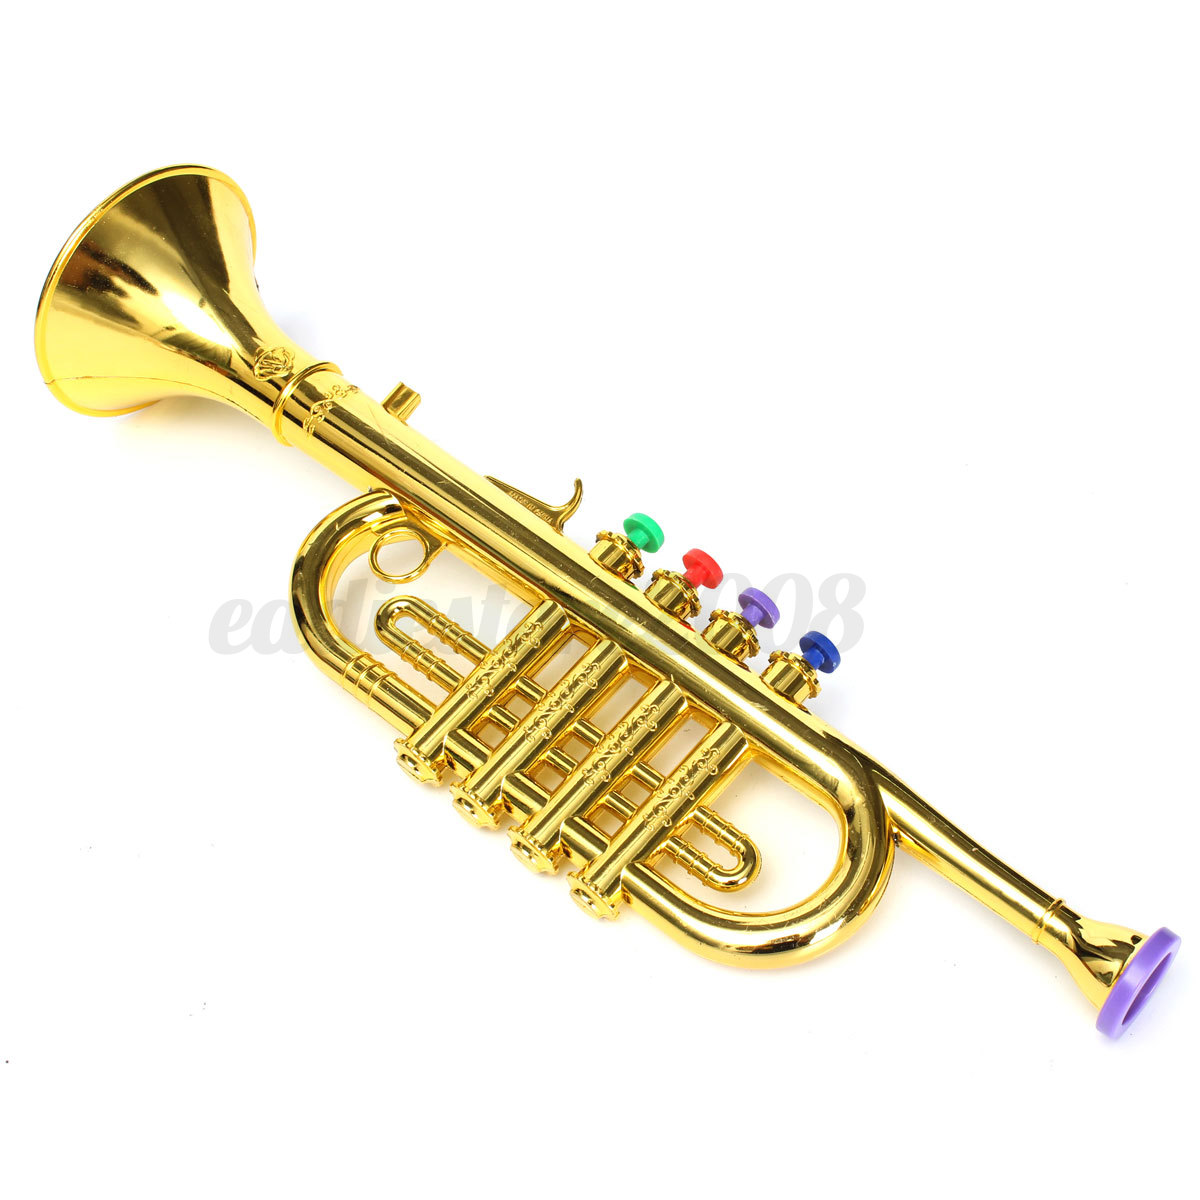 Toy Musical Horns : Gold silver horn trumpet musical instrument toy